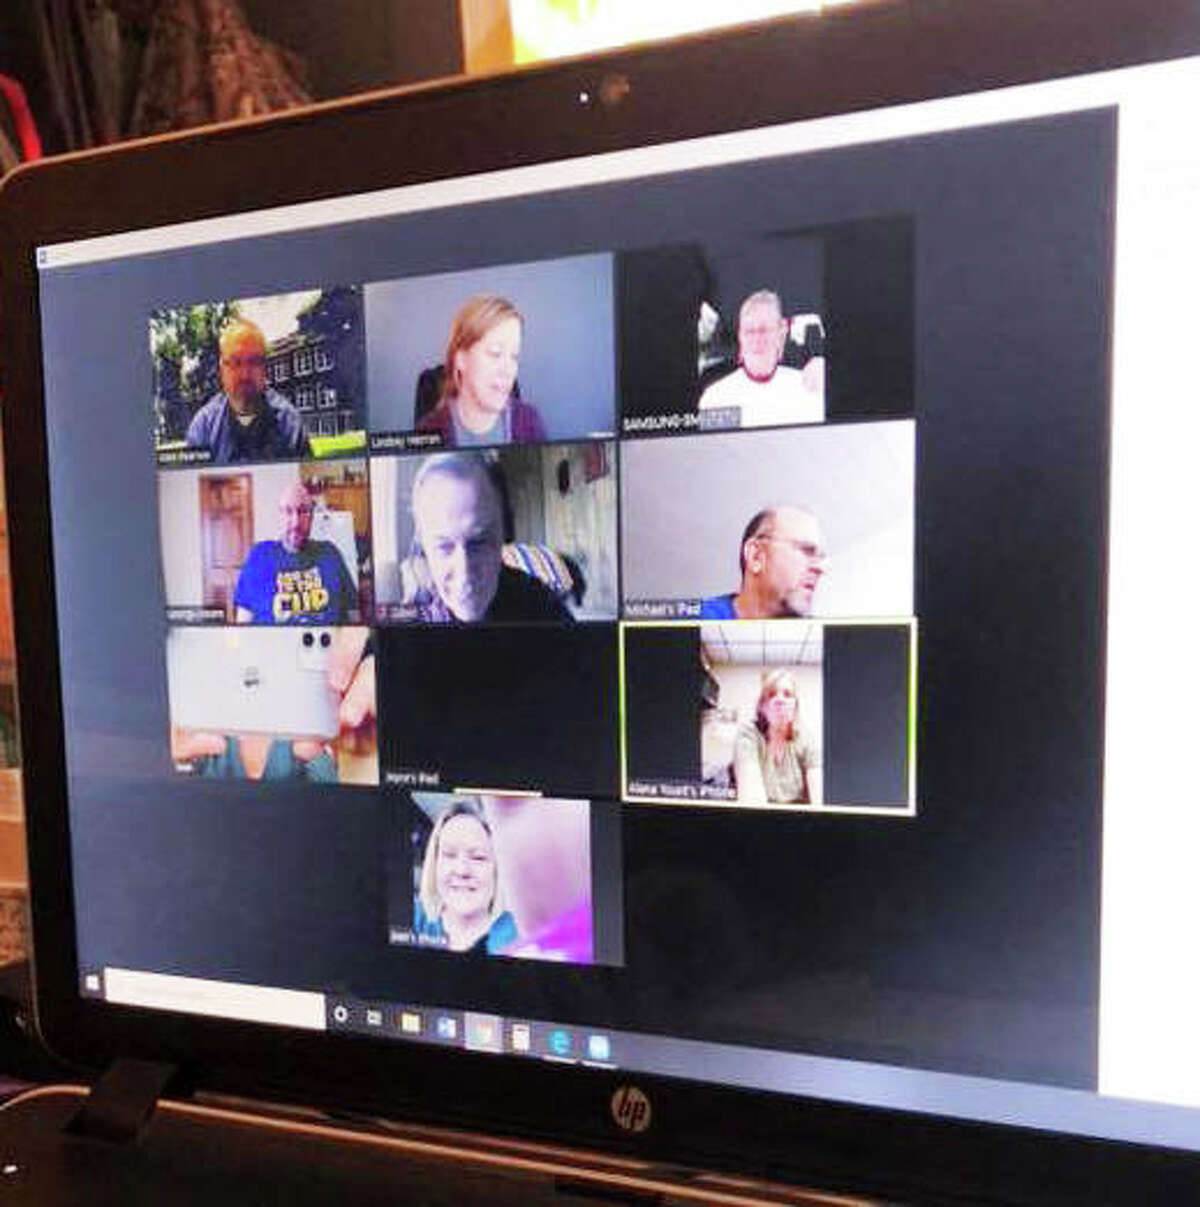 Members of the new Riverbend East Rotary Club, formed by the merger of two former Rotary clubs - East Alton and Wood River - meet virtually via Zoom to discuss agenda items at its weekly meeting at noon Thursdays. The merger became official this month.